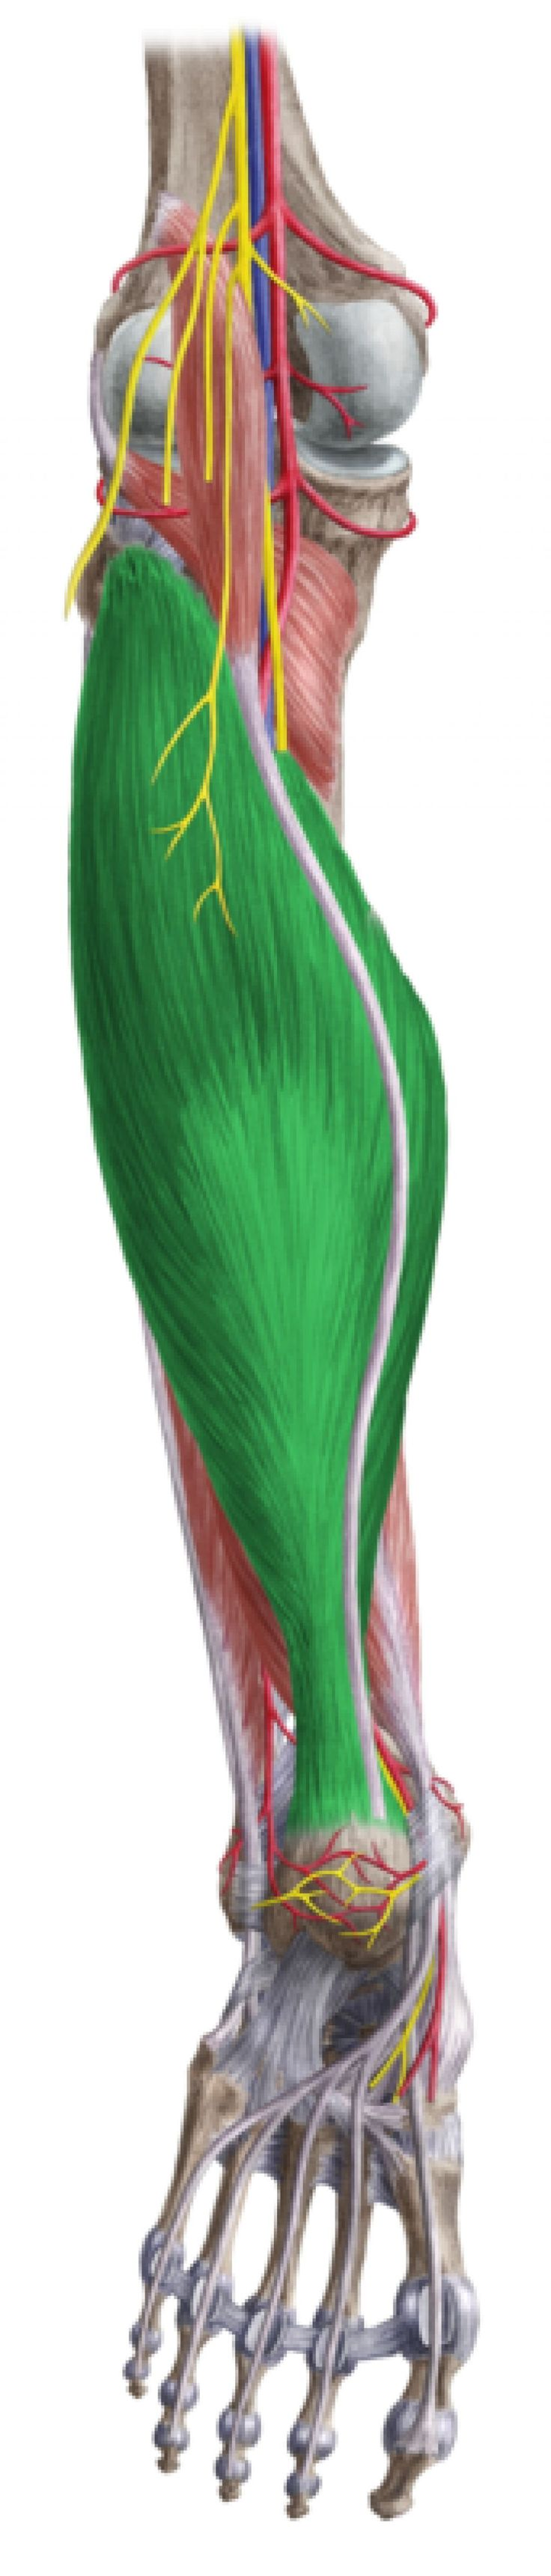 Triceps Surae Muscle